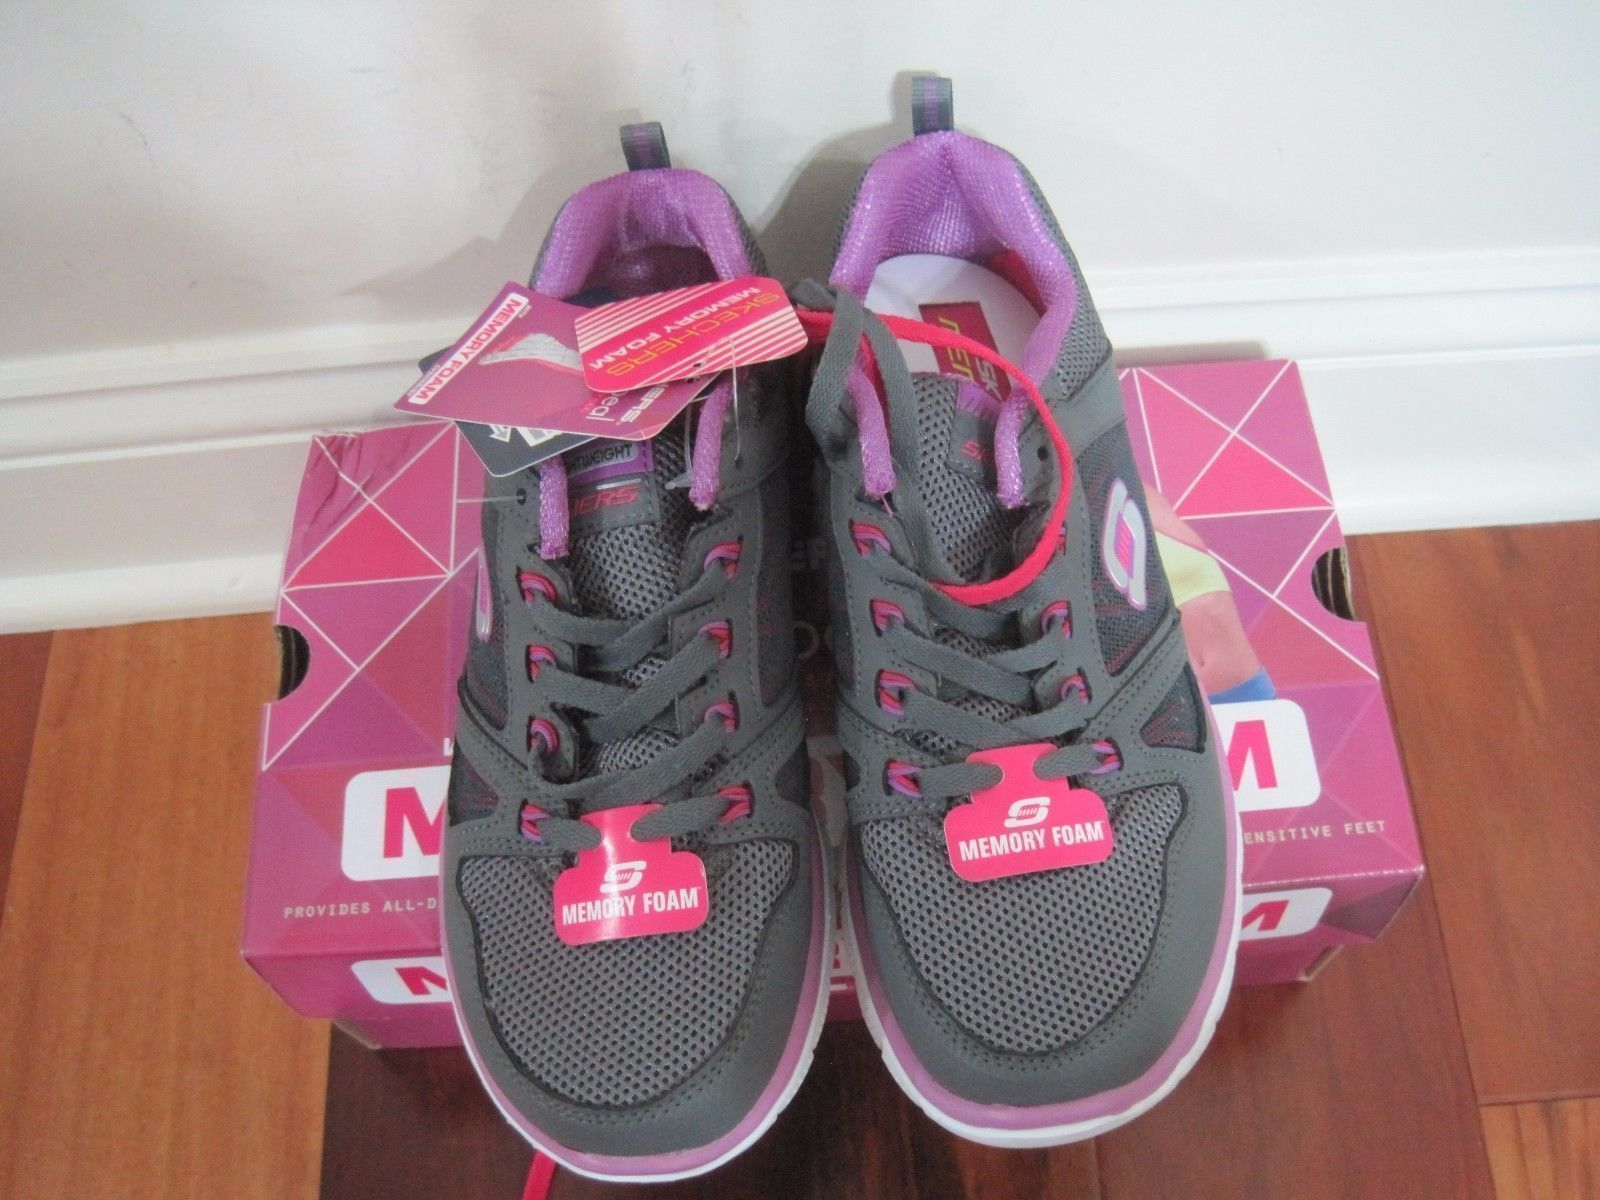 BNIB Skechers Flex Appeal - Spring Fever Womens' Athletic Shoes, ships w/o box image 5